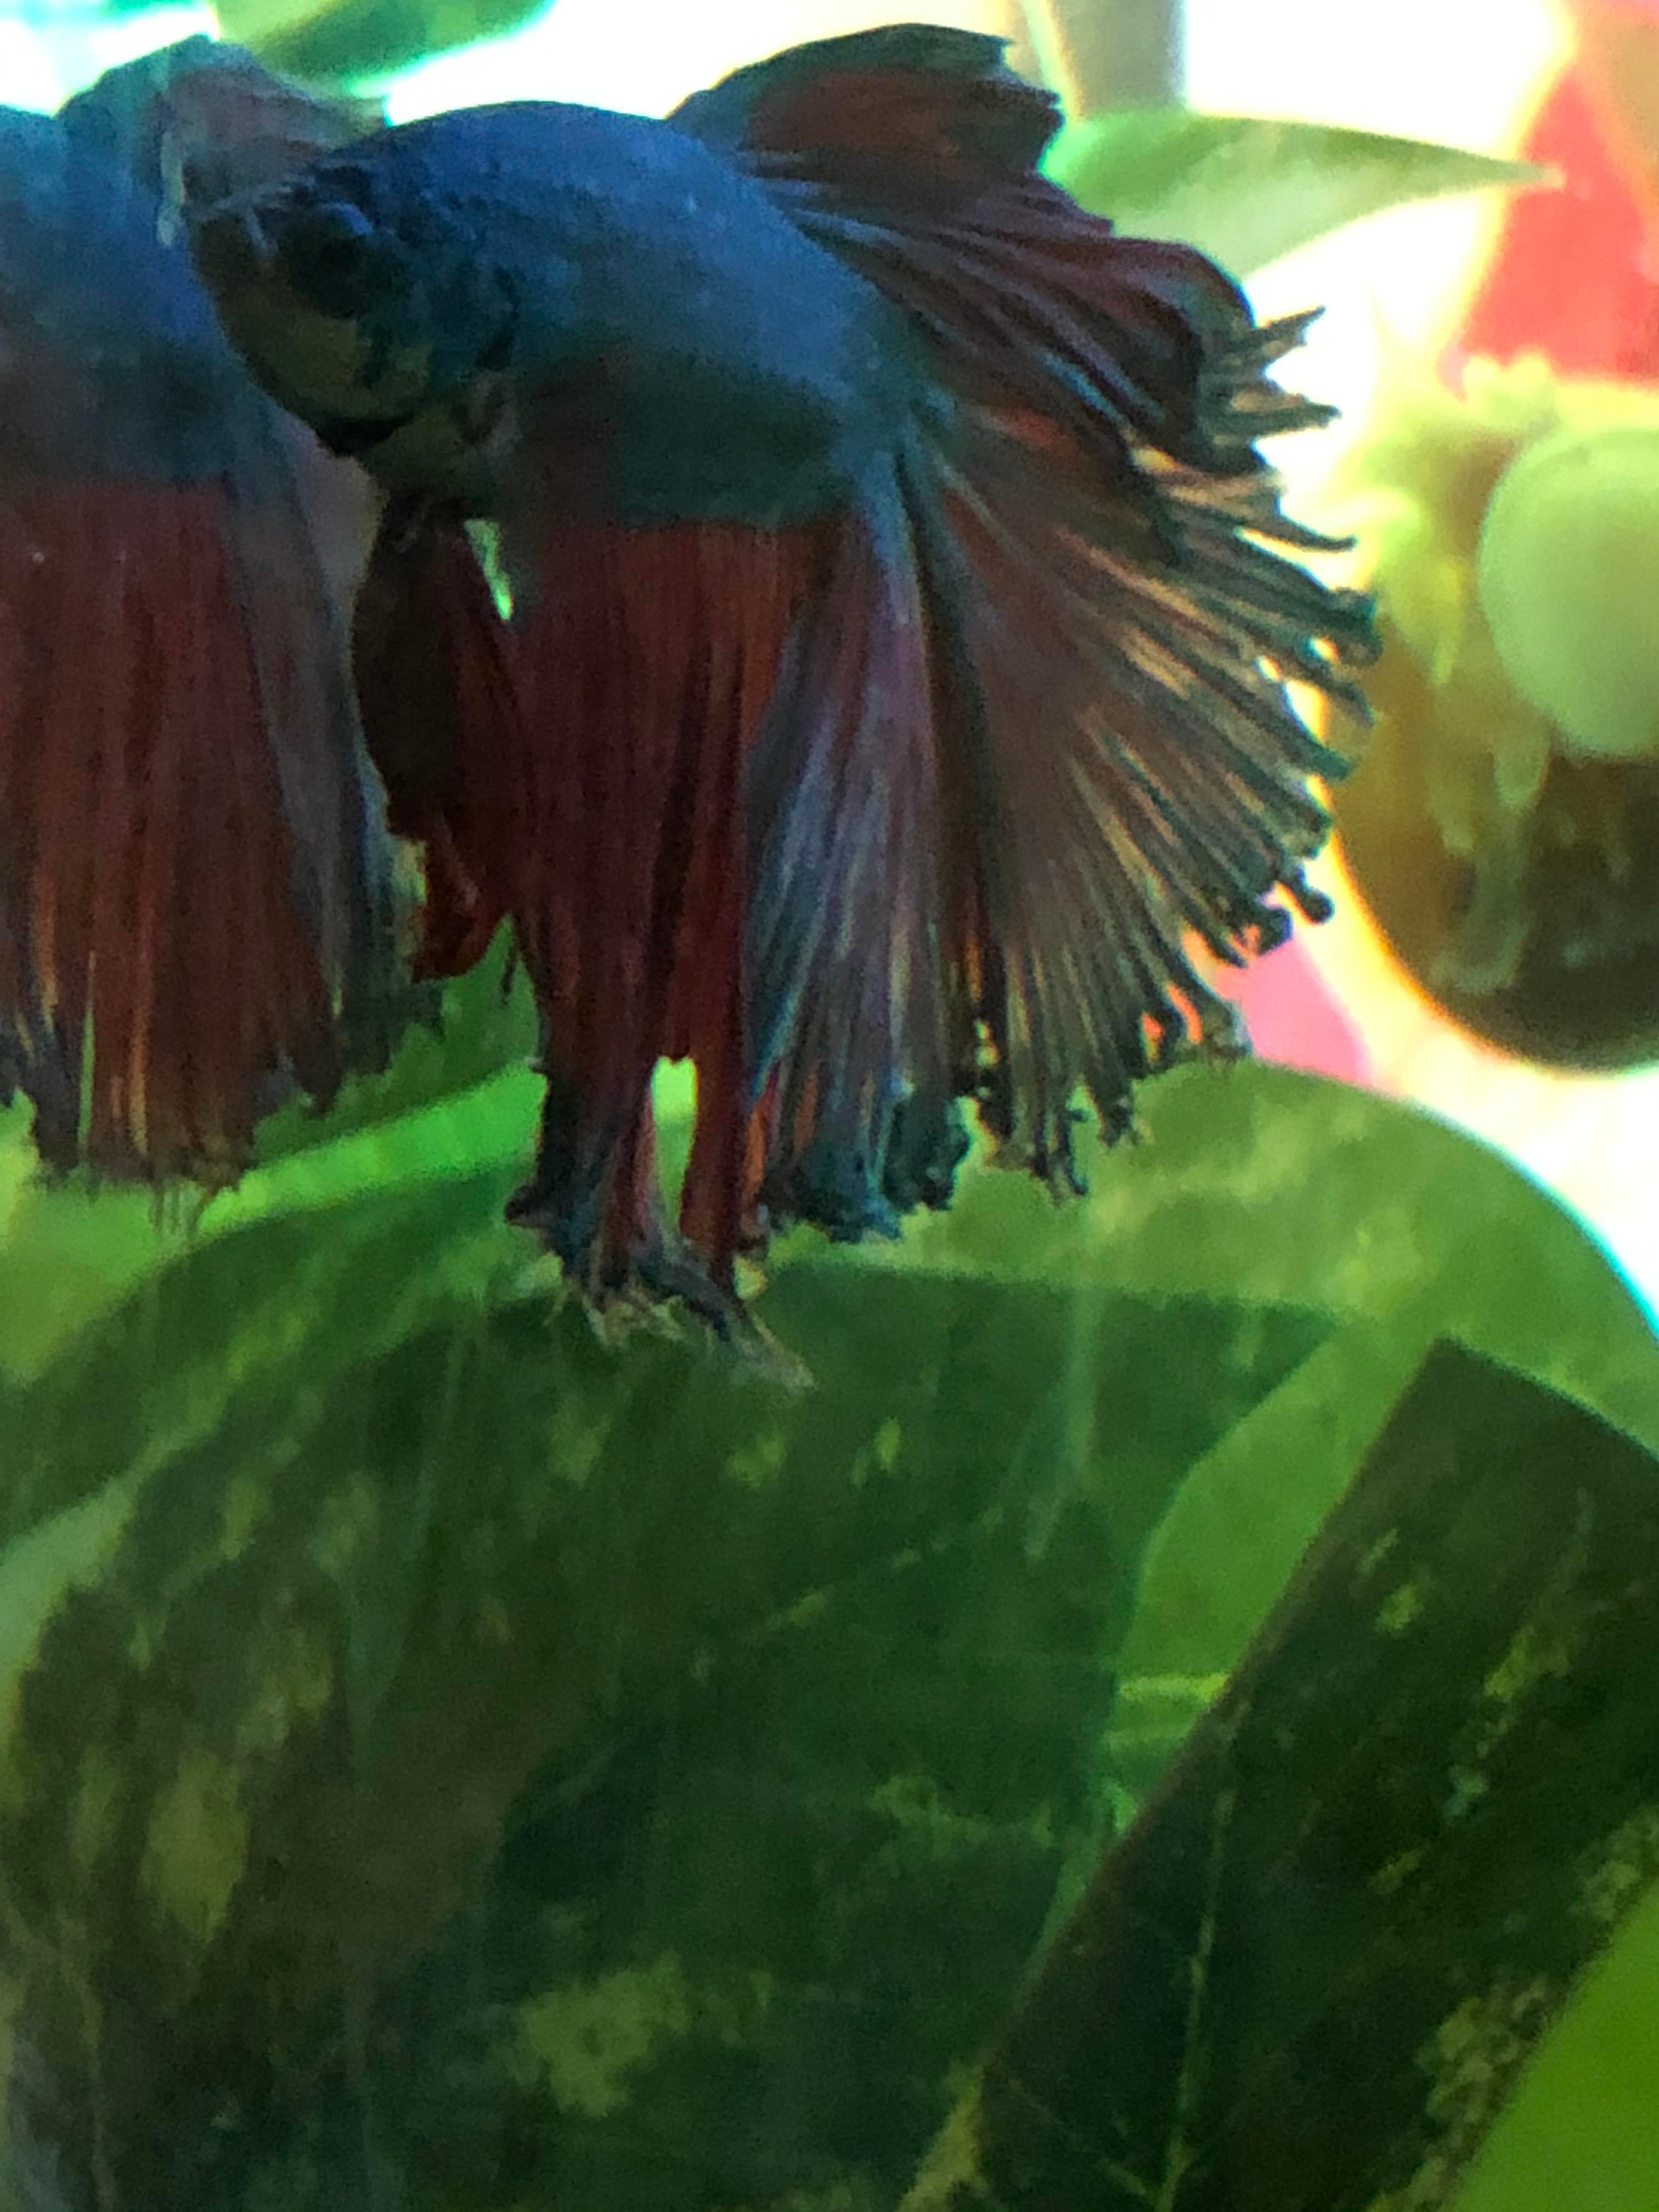 Betta Fish My Betta Has A Chunk Of Fin Missing And I Don T Know What To Do He Still Has Fin Rot And Isn T Getting Any Better His Betta Fish